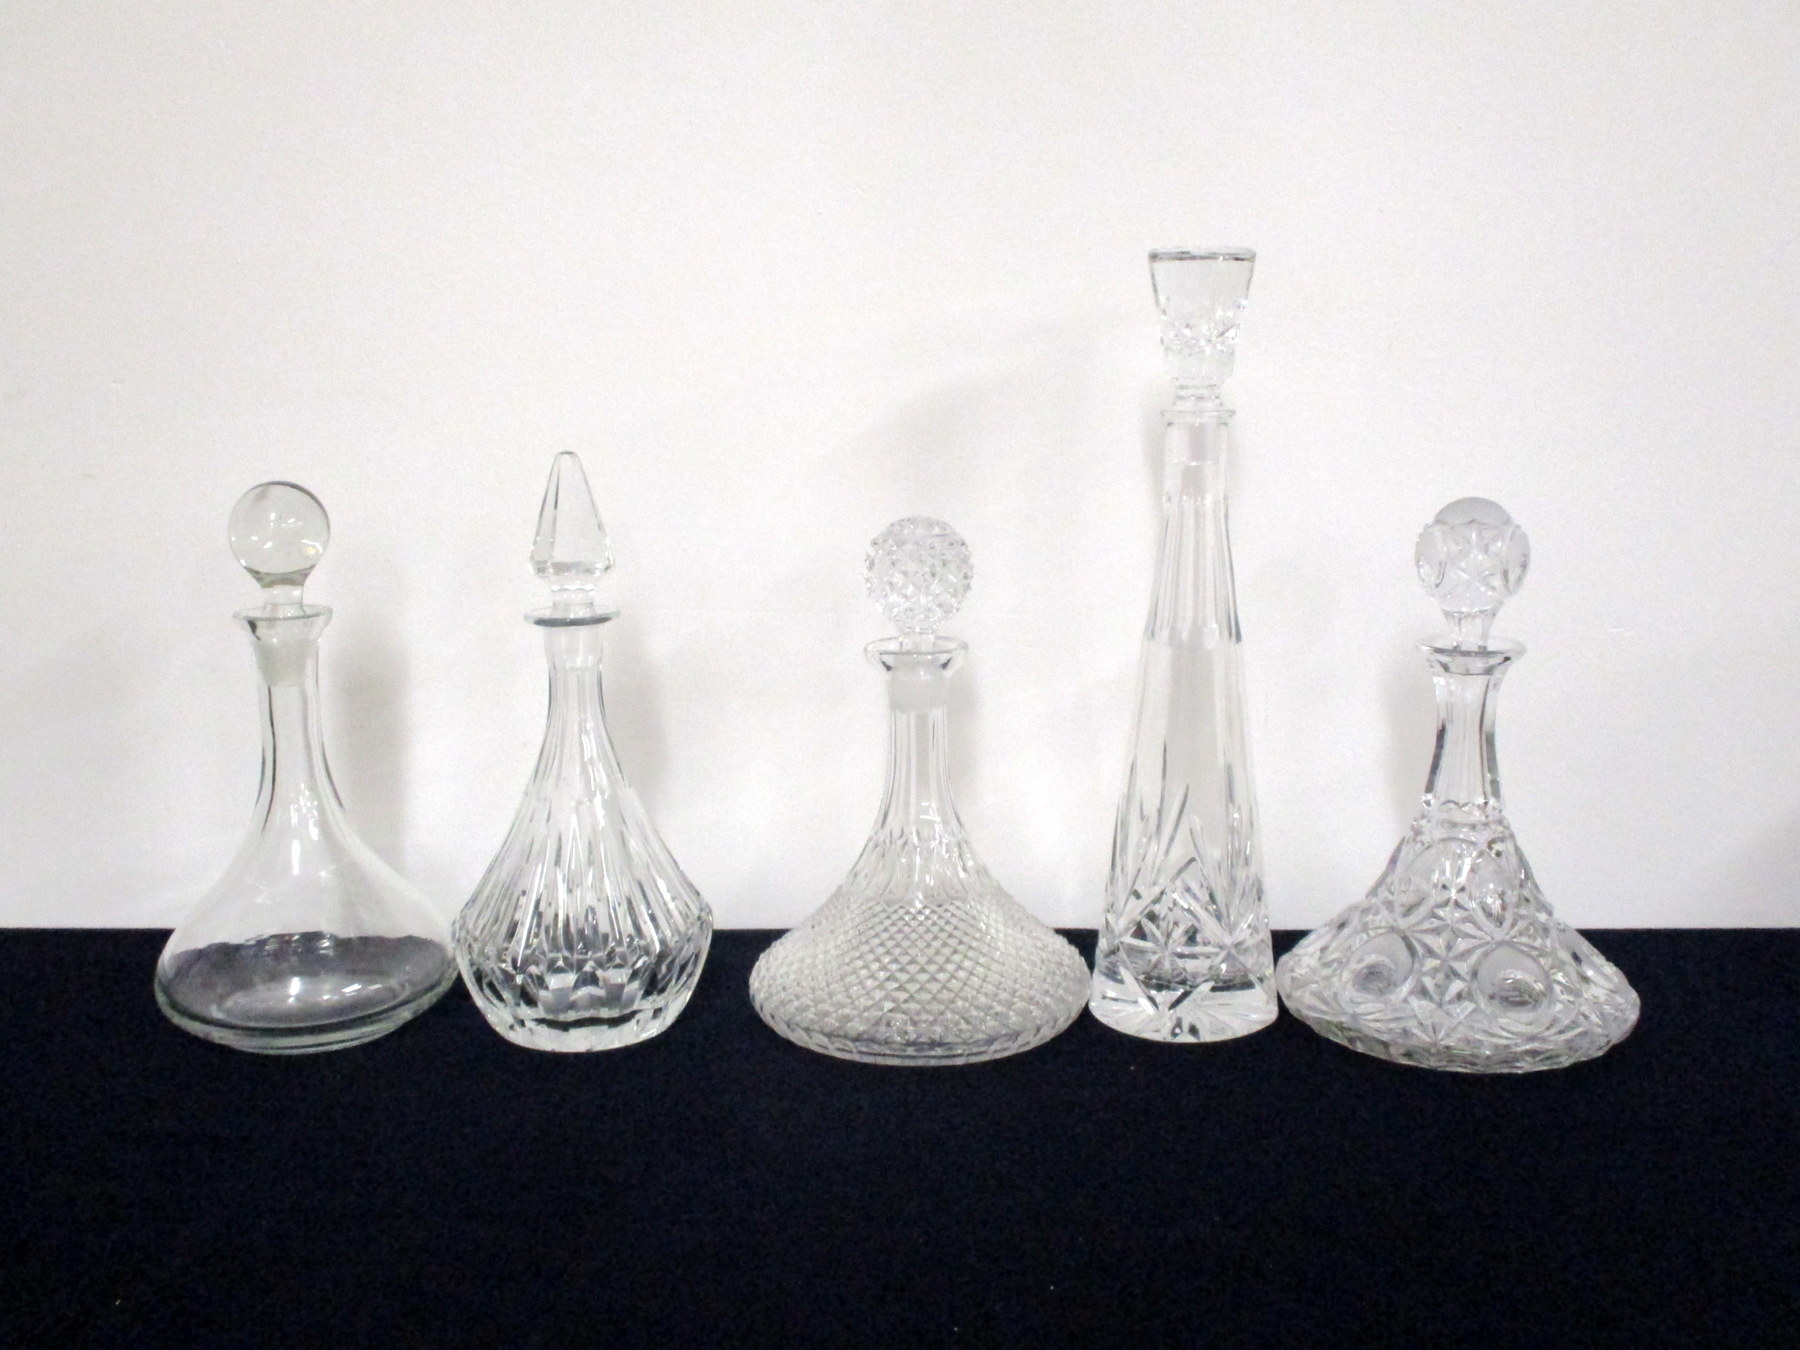 Five Assorted Decanters with Stoppers, including Ships Decanter and Hobnail cut glass